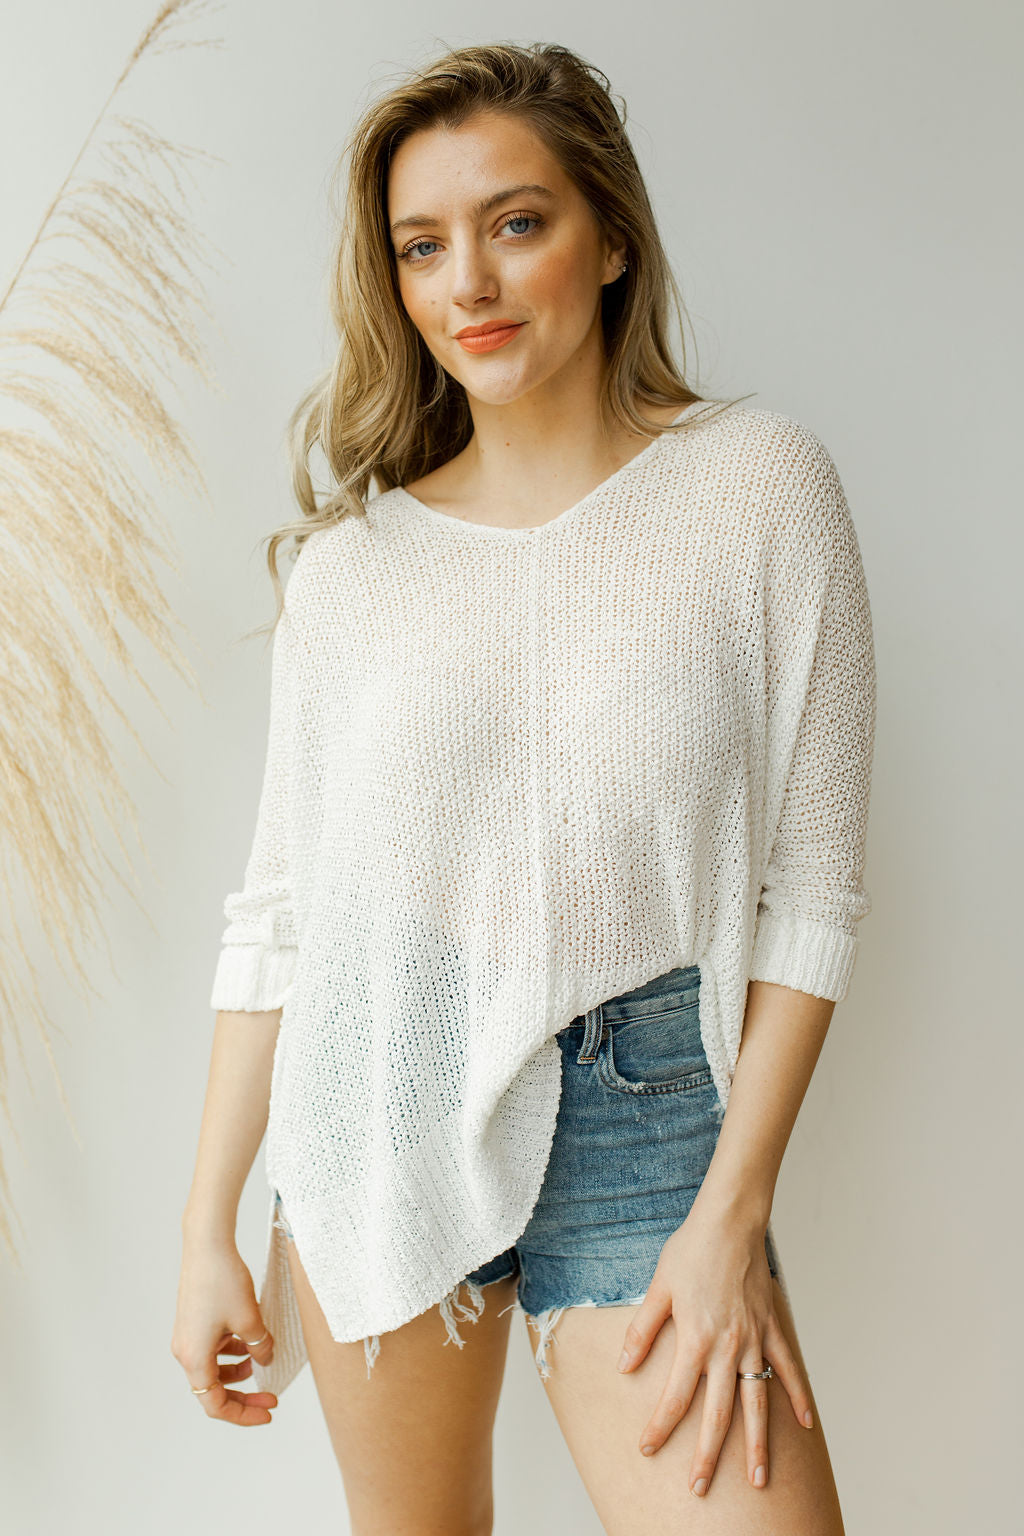 mode, walks by the beach sweater